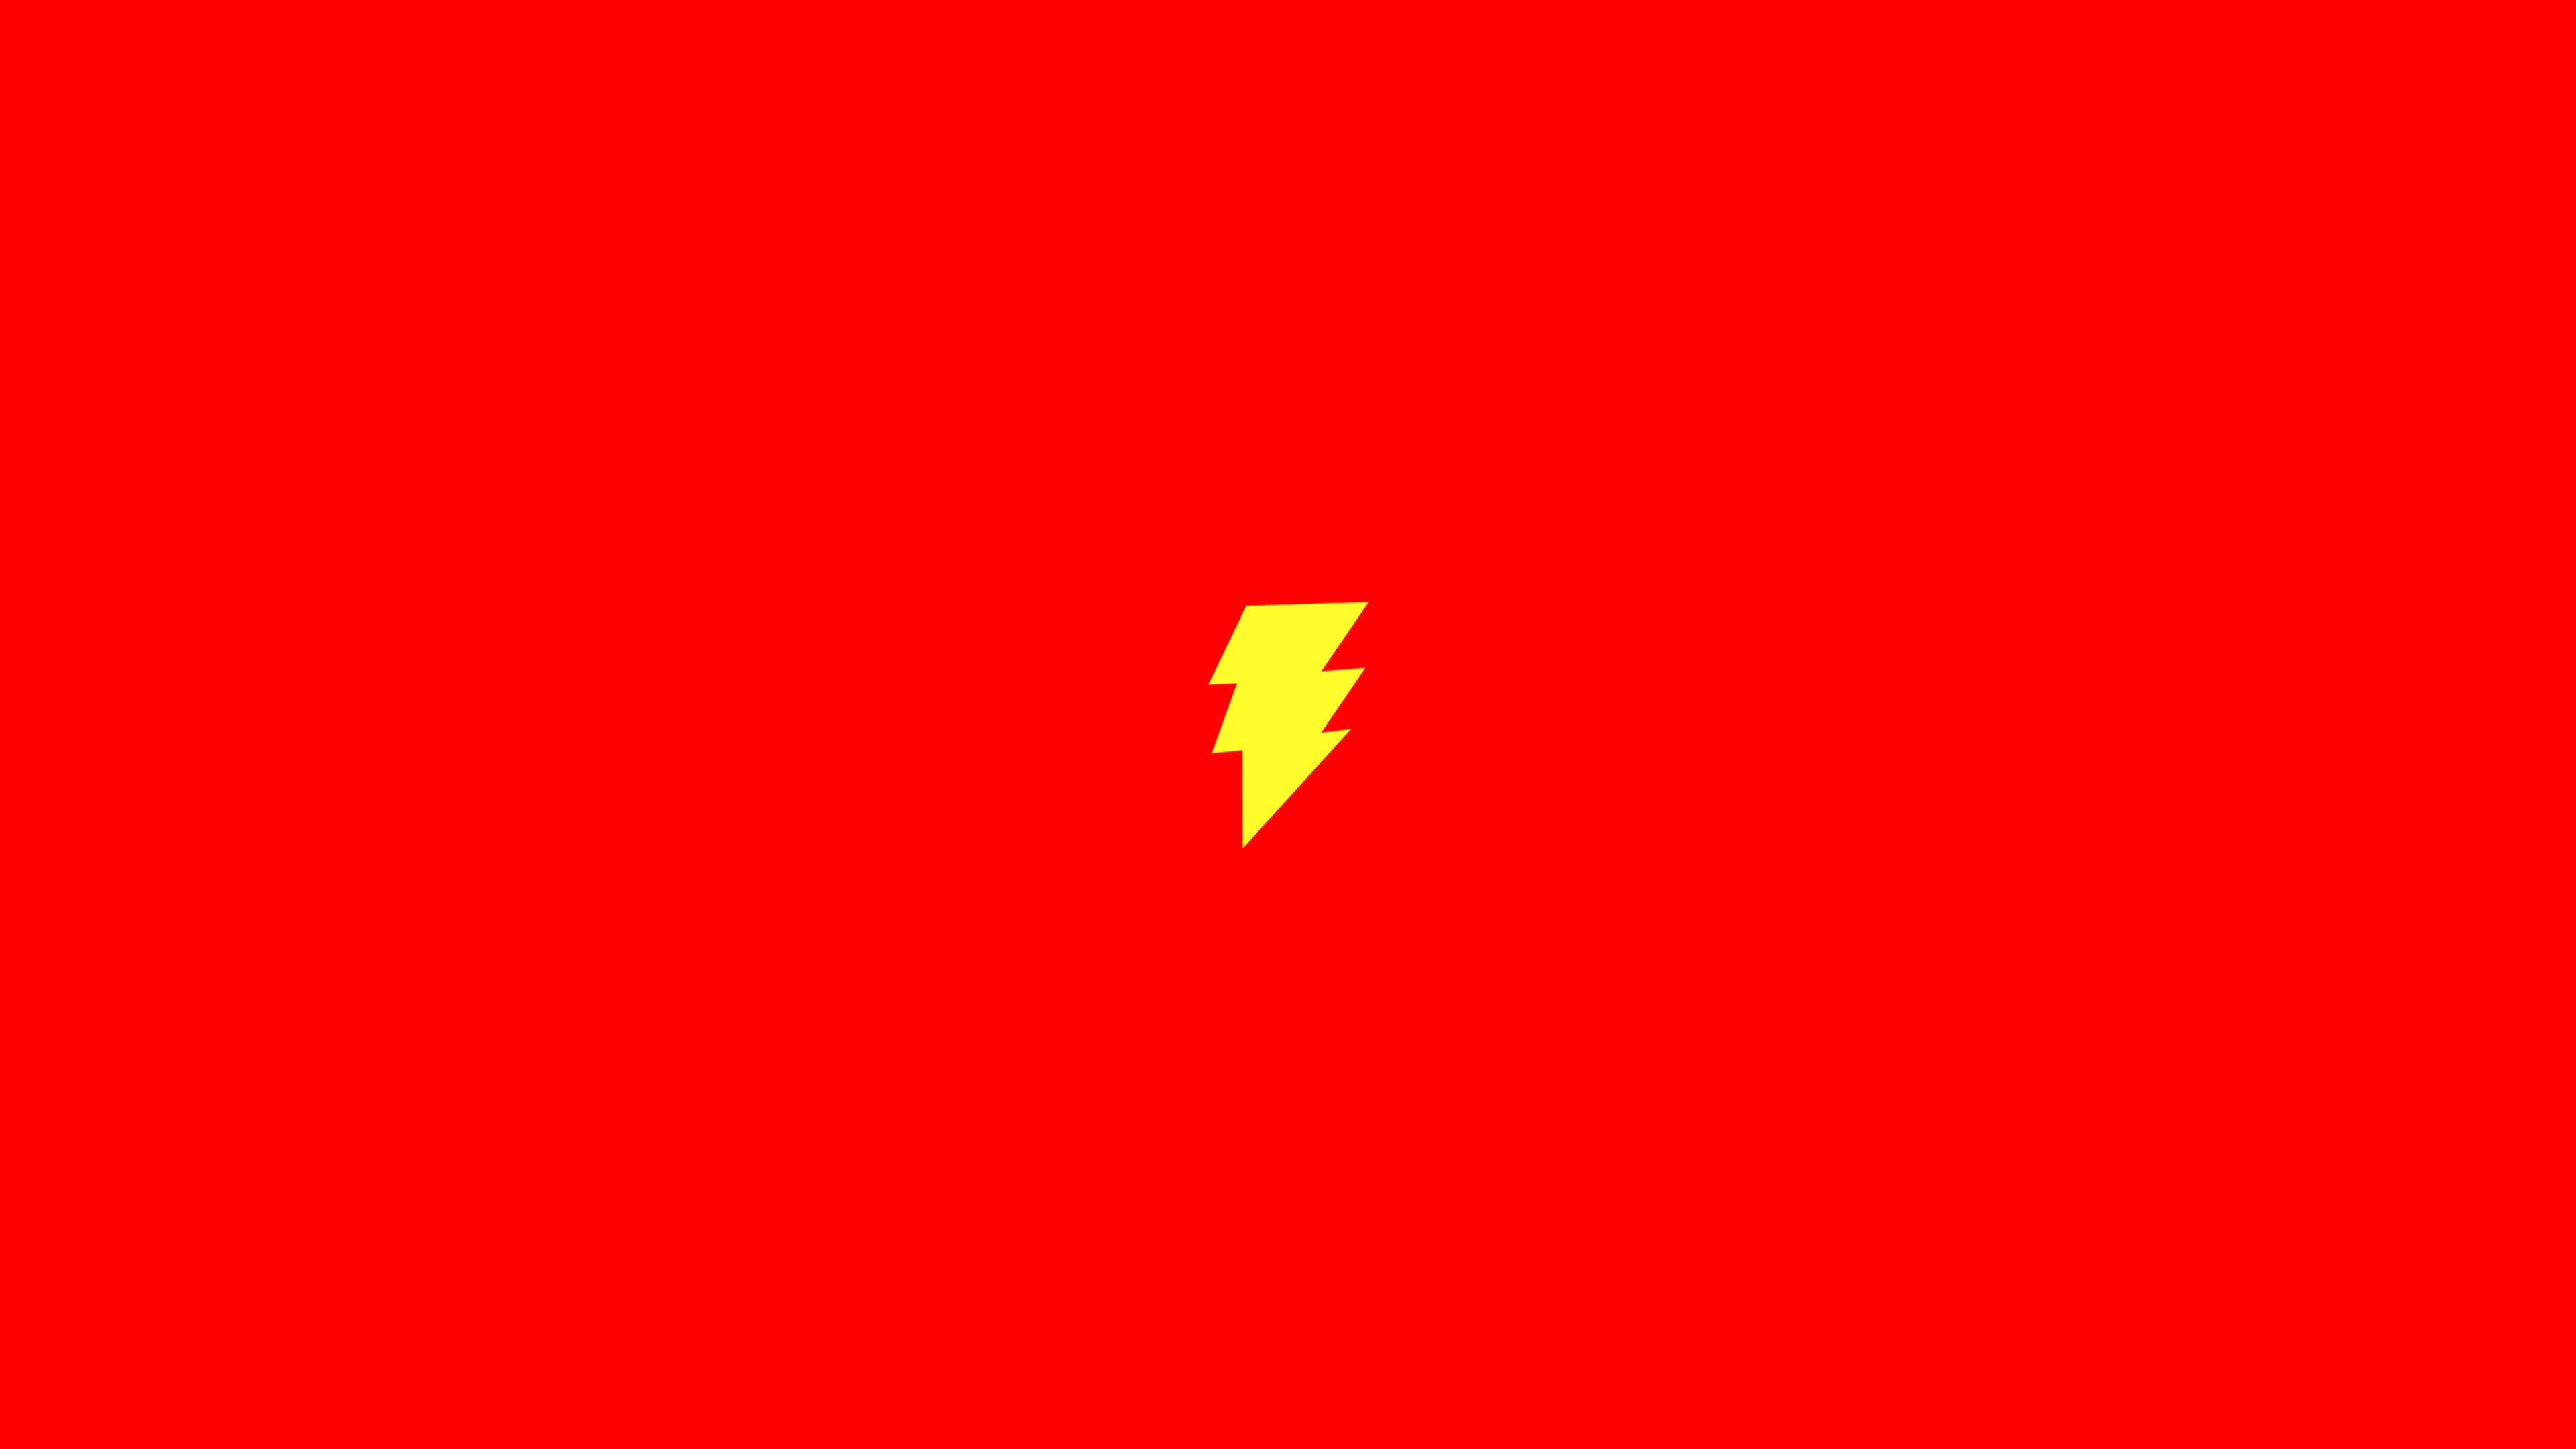 Minimalist Fall Wallpapers An12 Flash Comic Hero Minimal Red Art Logo Papers Co